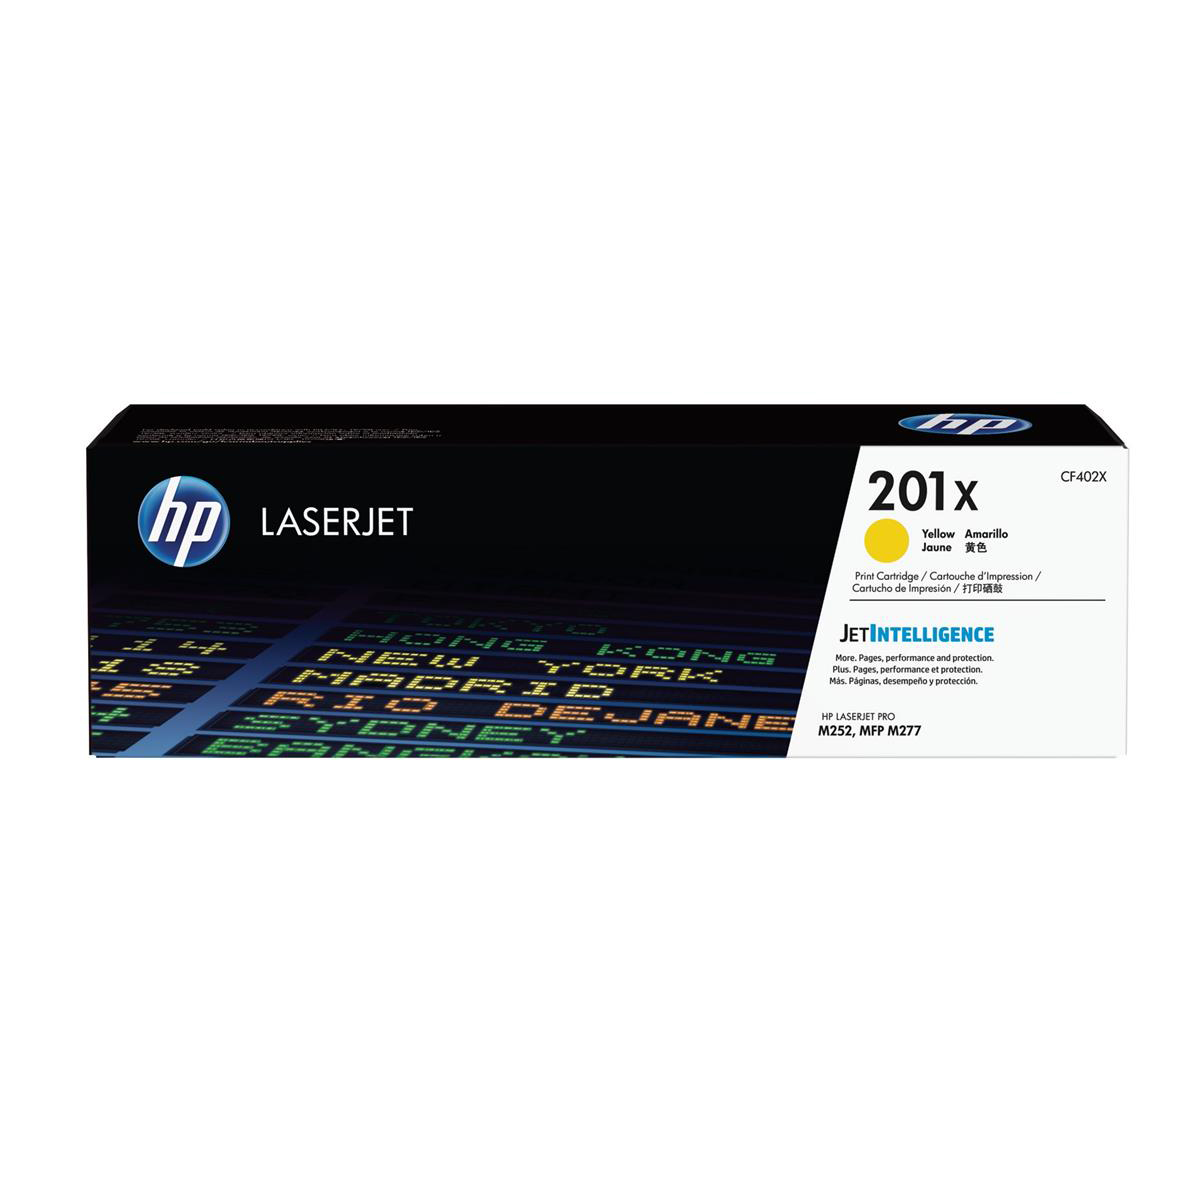 Hewlett Packard [HP] 201X Laserjet Toner Cartridge Yellow High Yield Ref CF402X